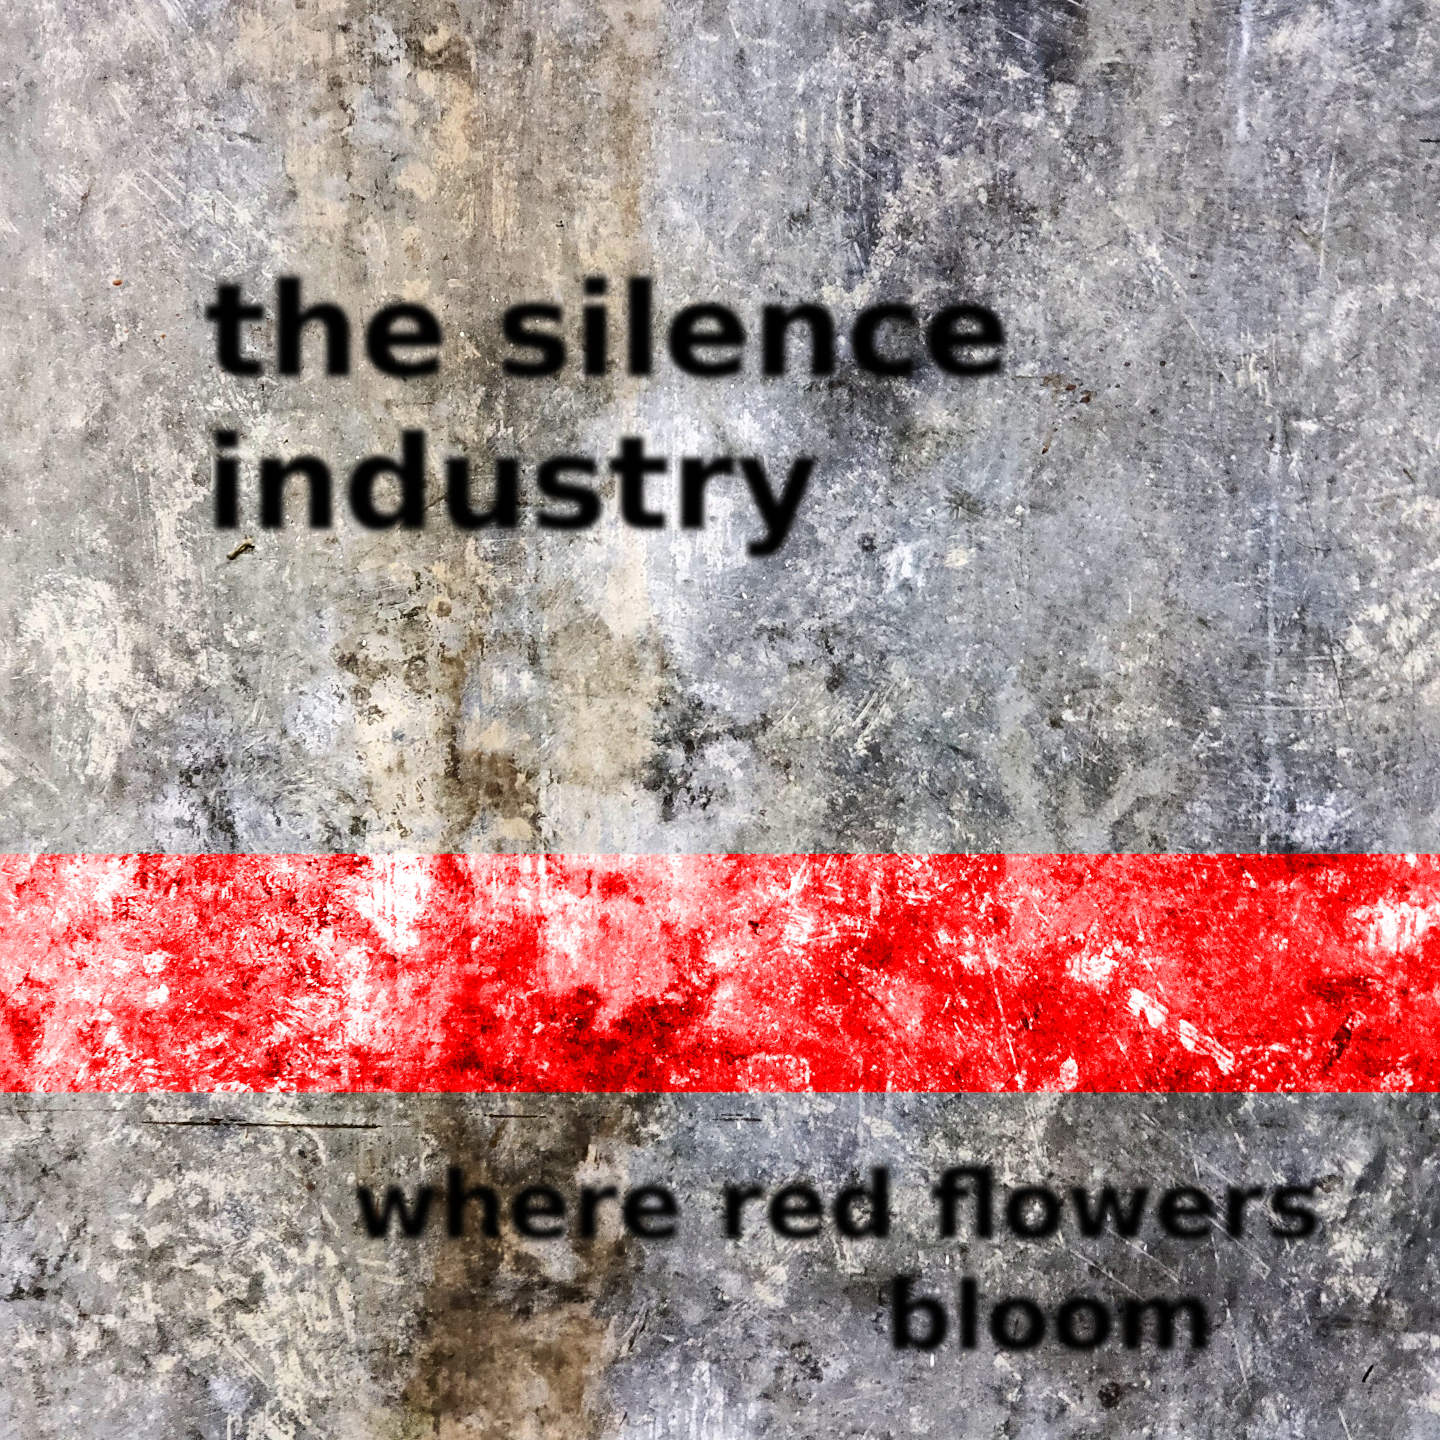 Where Red Flowers Bloom